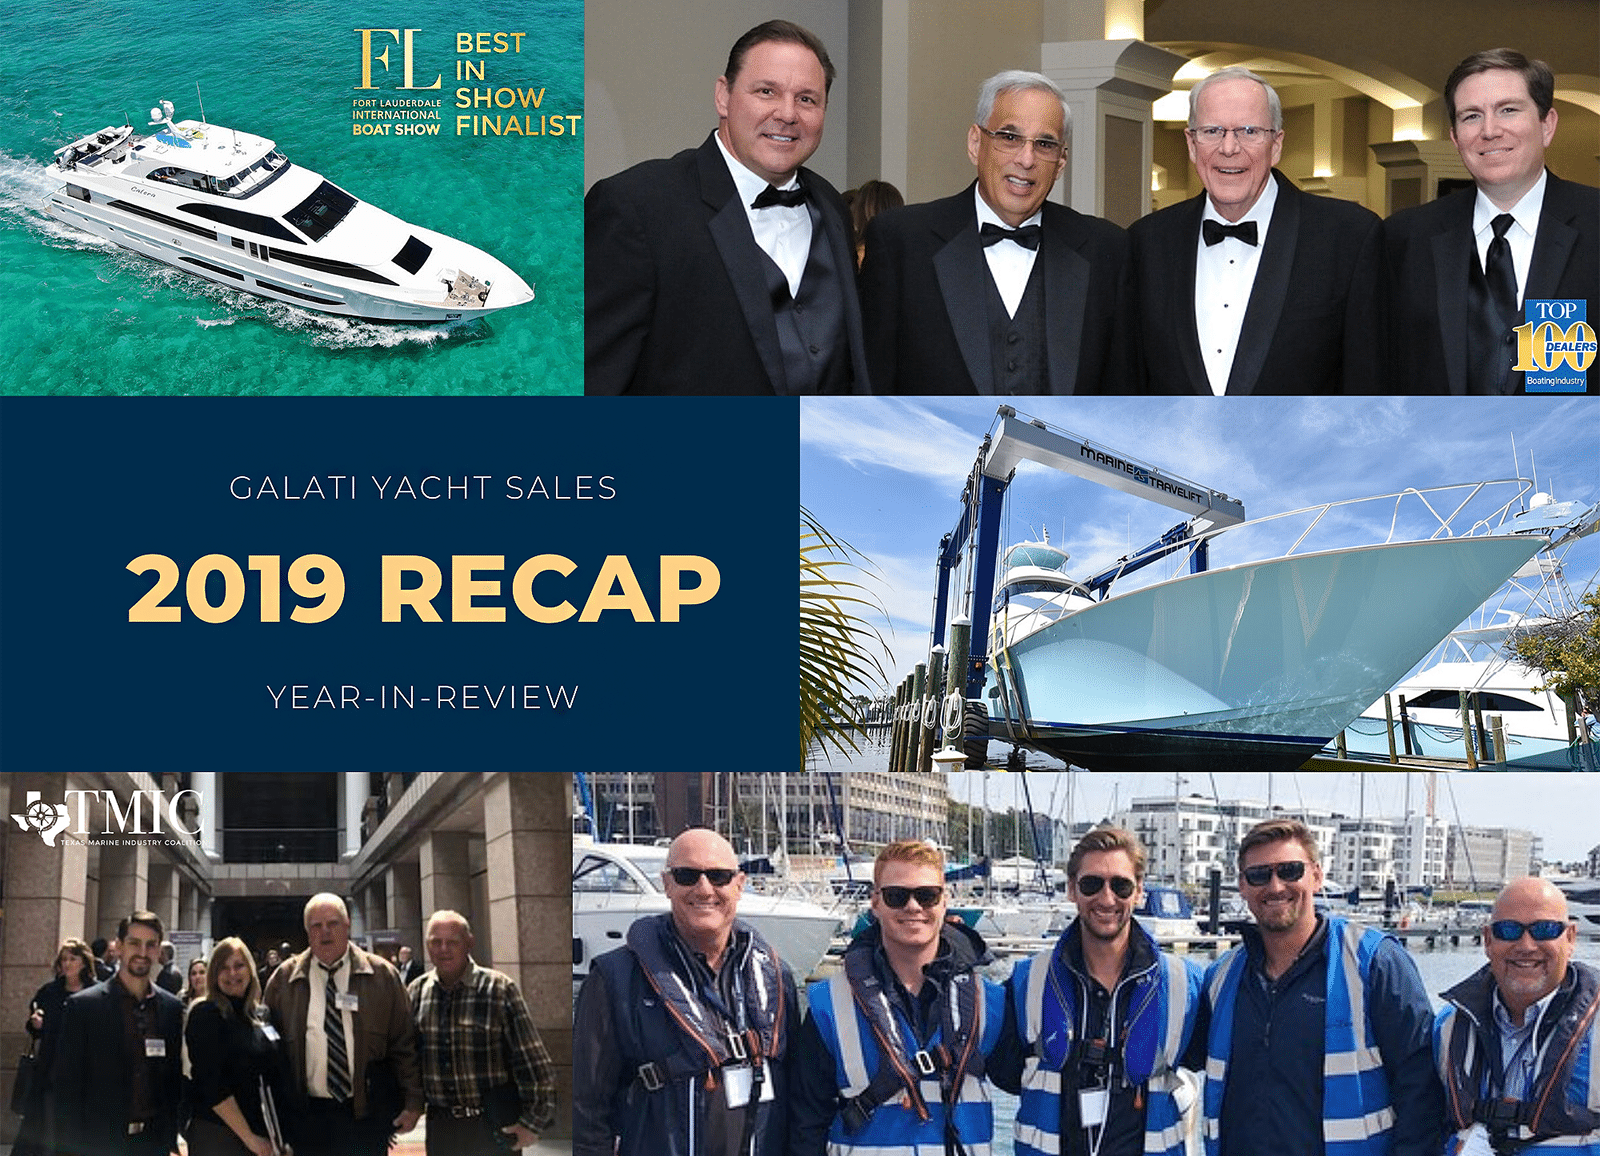 Galati Yacht Sales Year-in-Review 2019 Recap